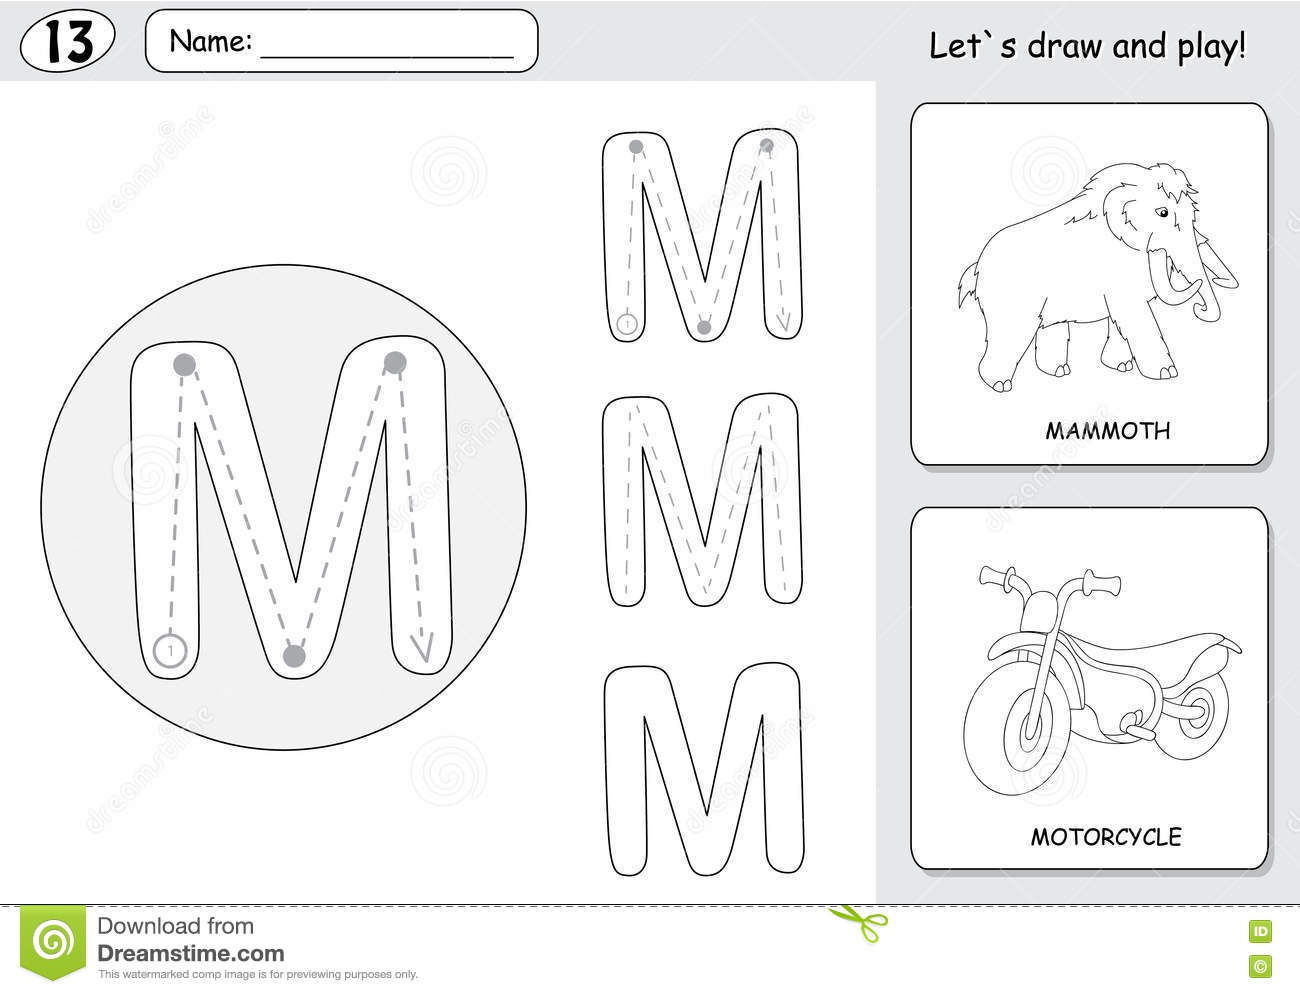 Cartoon Mammoth And Motorcycle Alphabet Tracing Worksheet